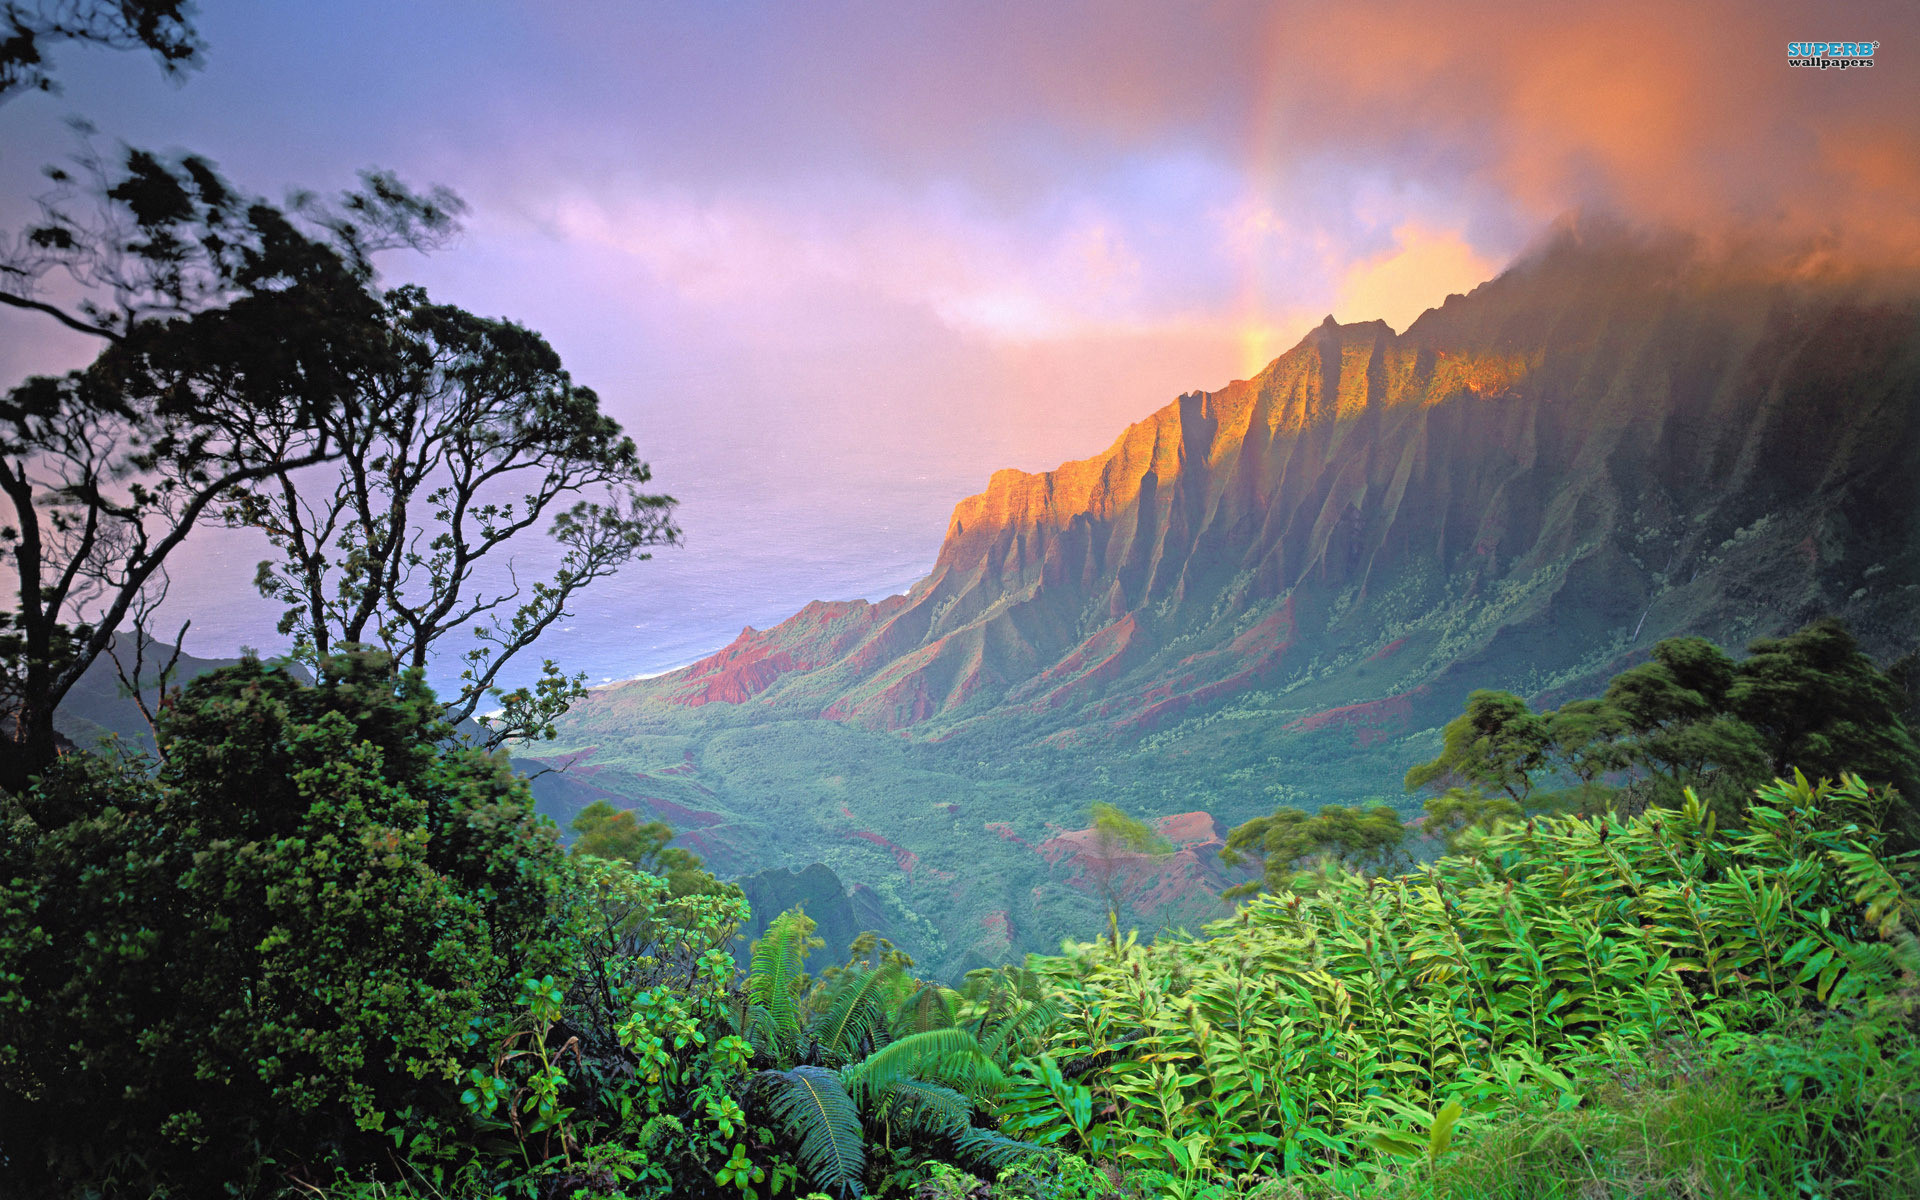 HD Images Collection of Hawaii: 3507276 by Celina Feemster